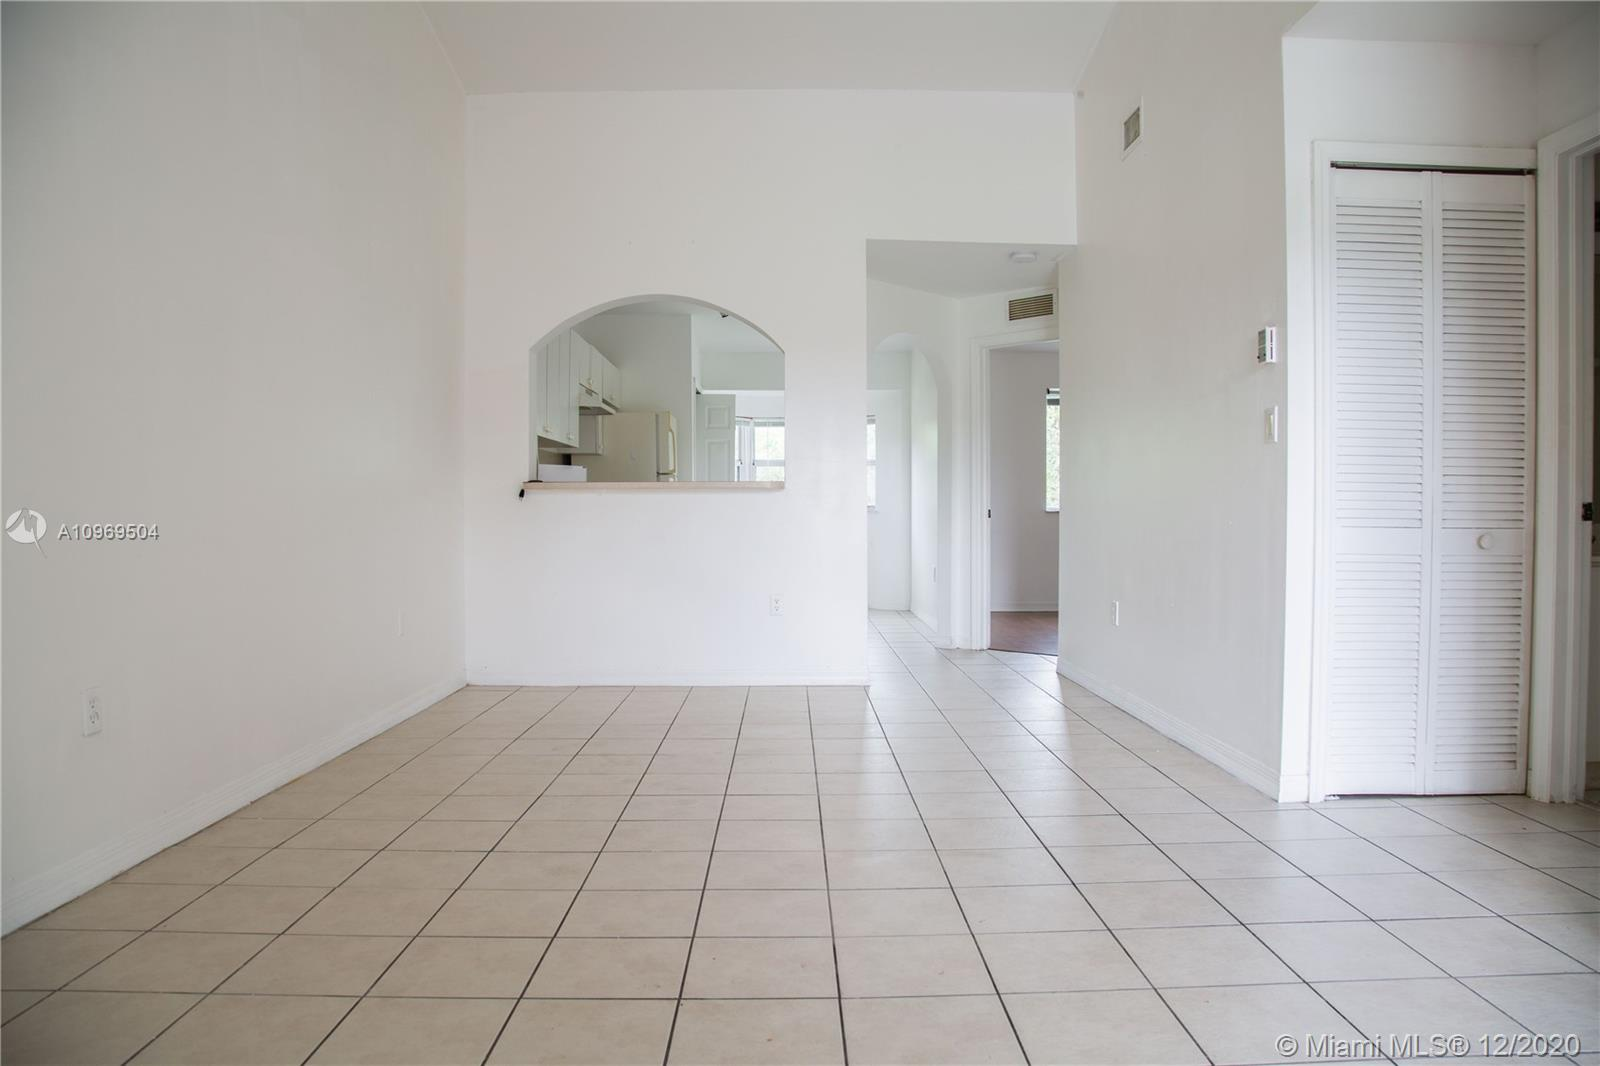 A10969504 Property Photo